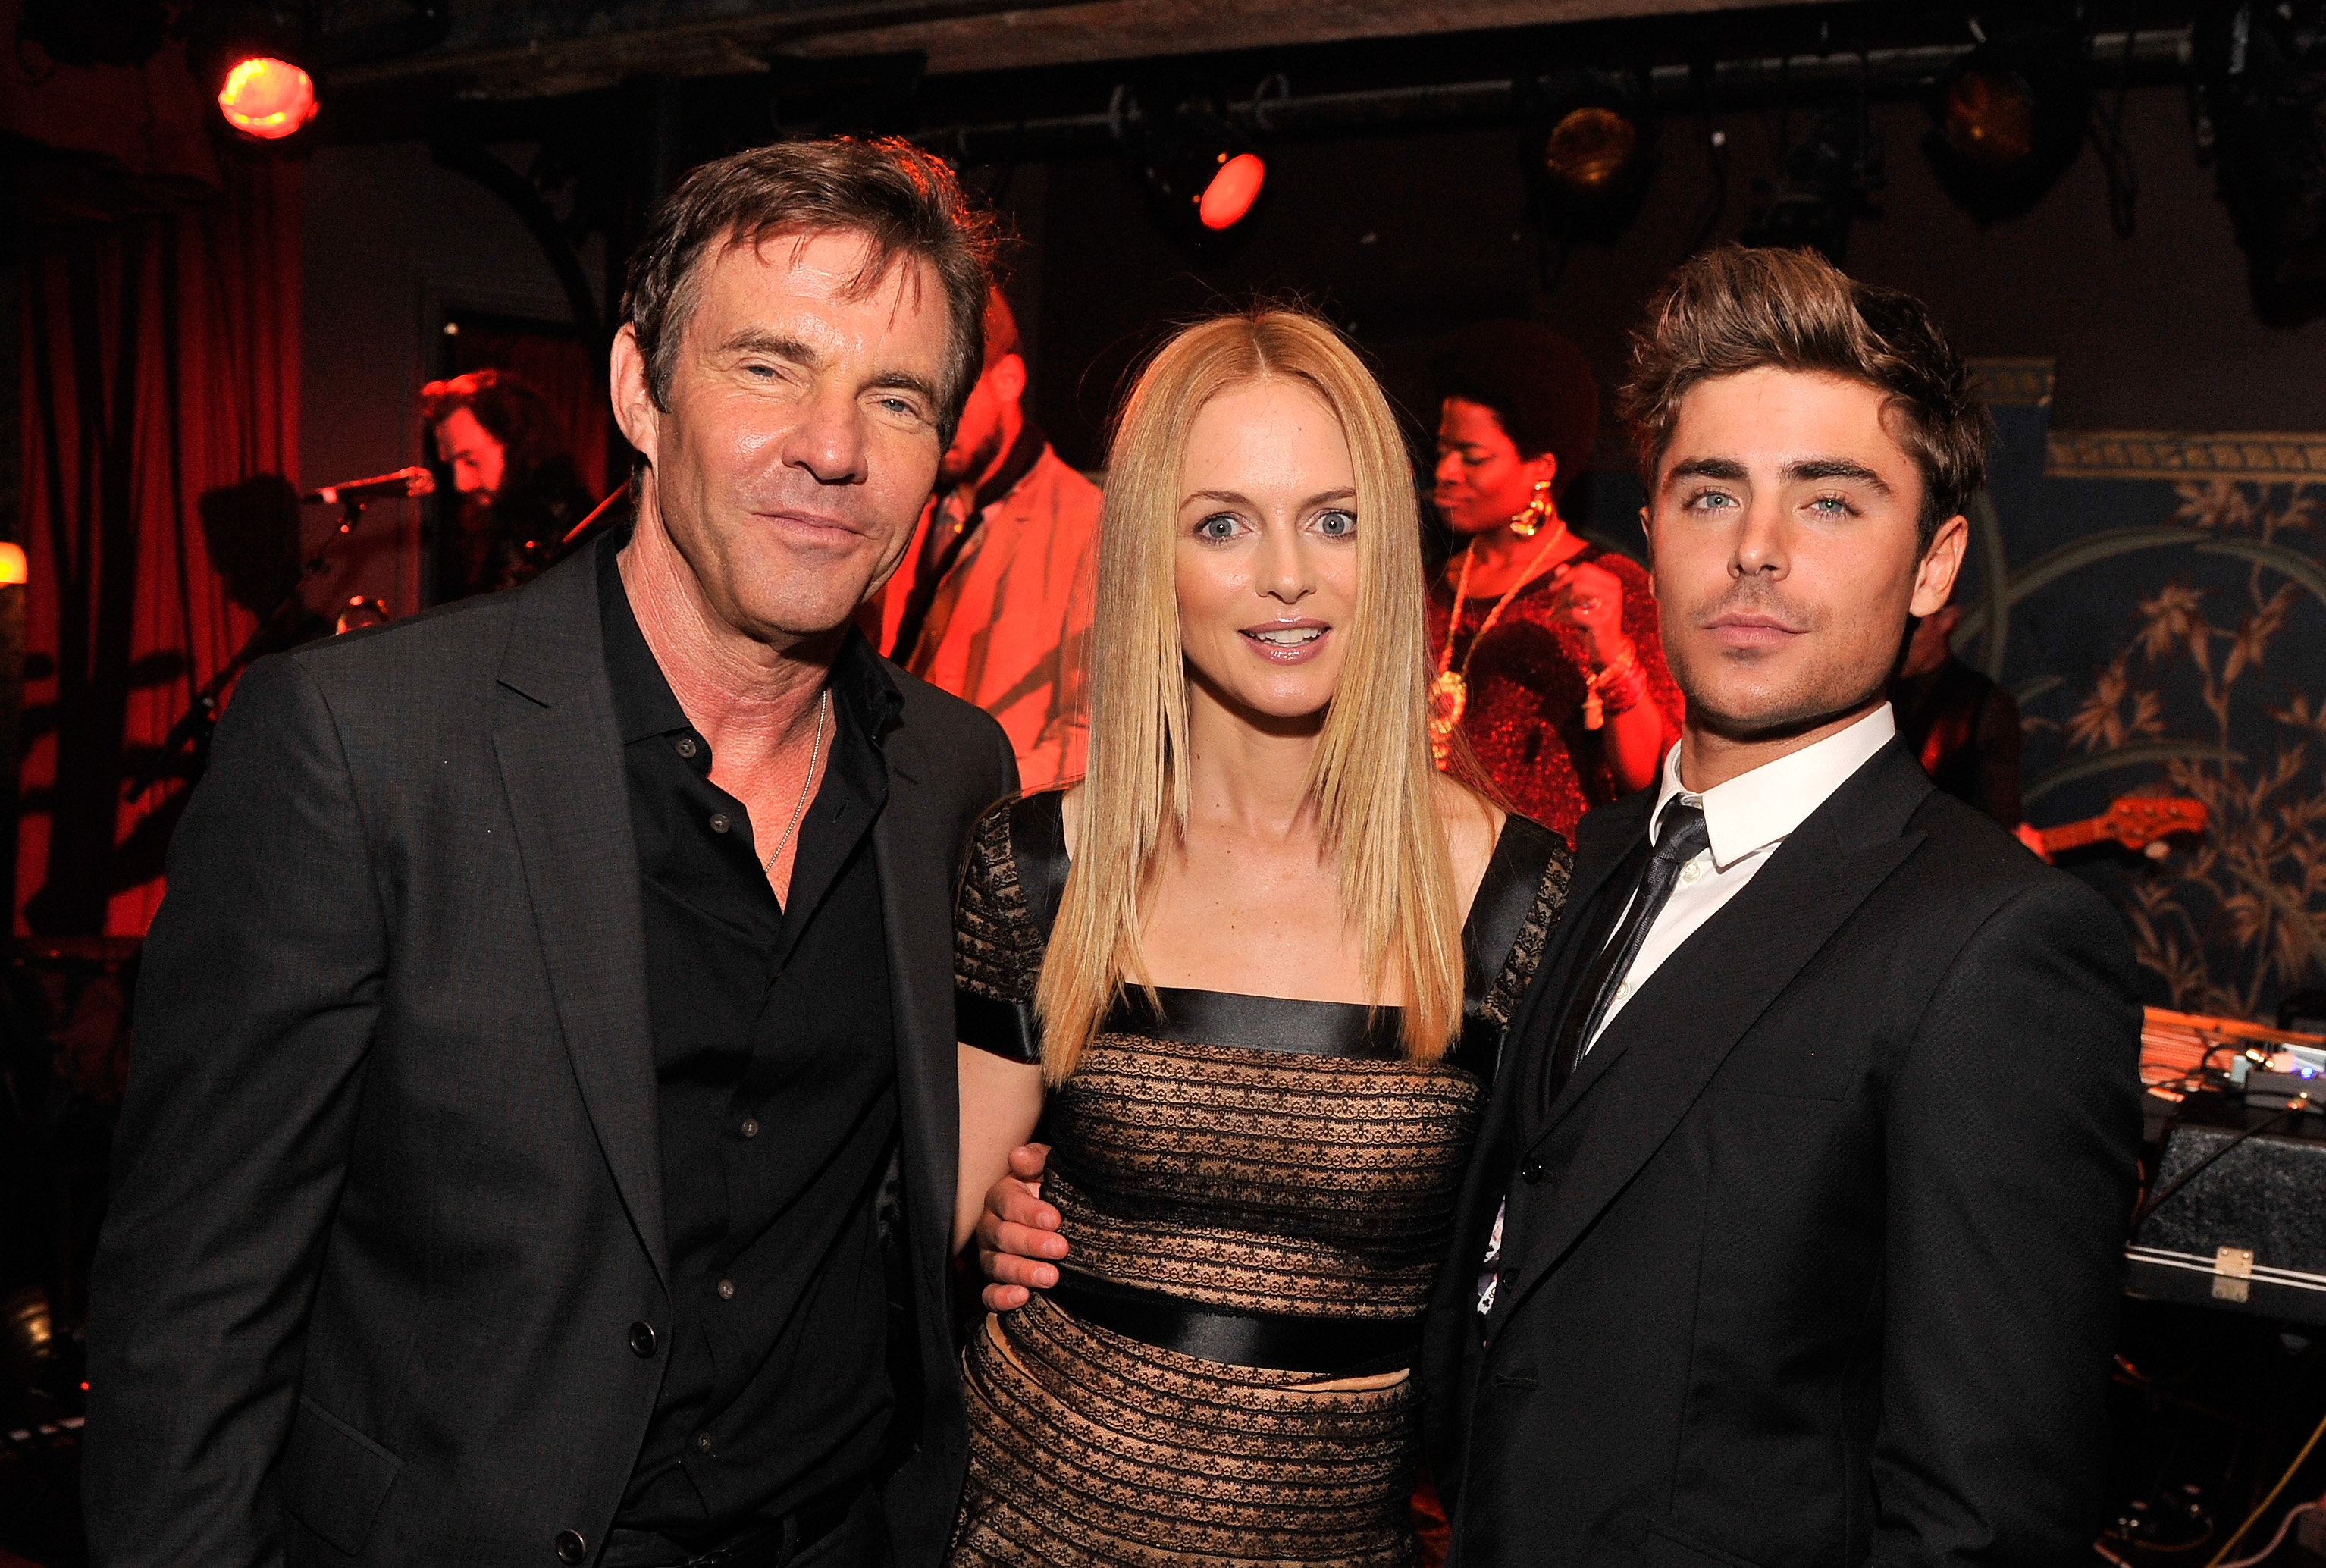 Dennis Quaid, Heather Graham, and Zac Efro